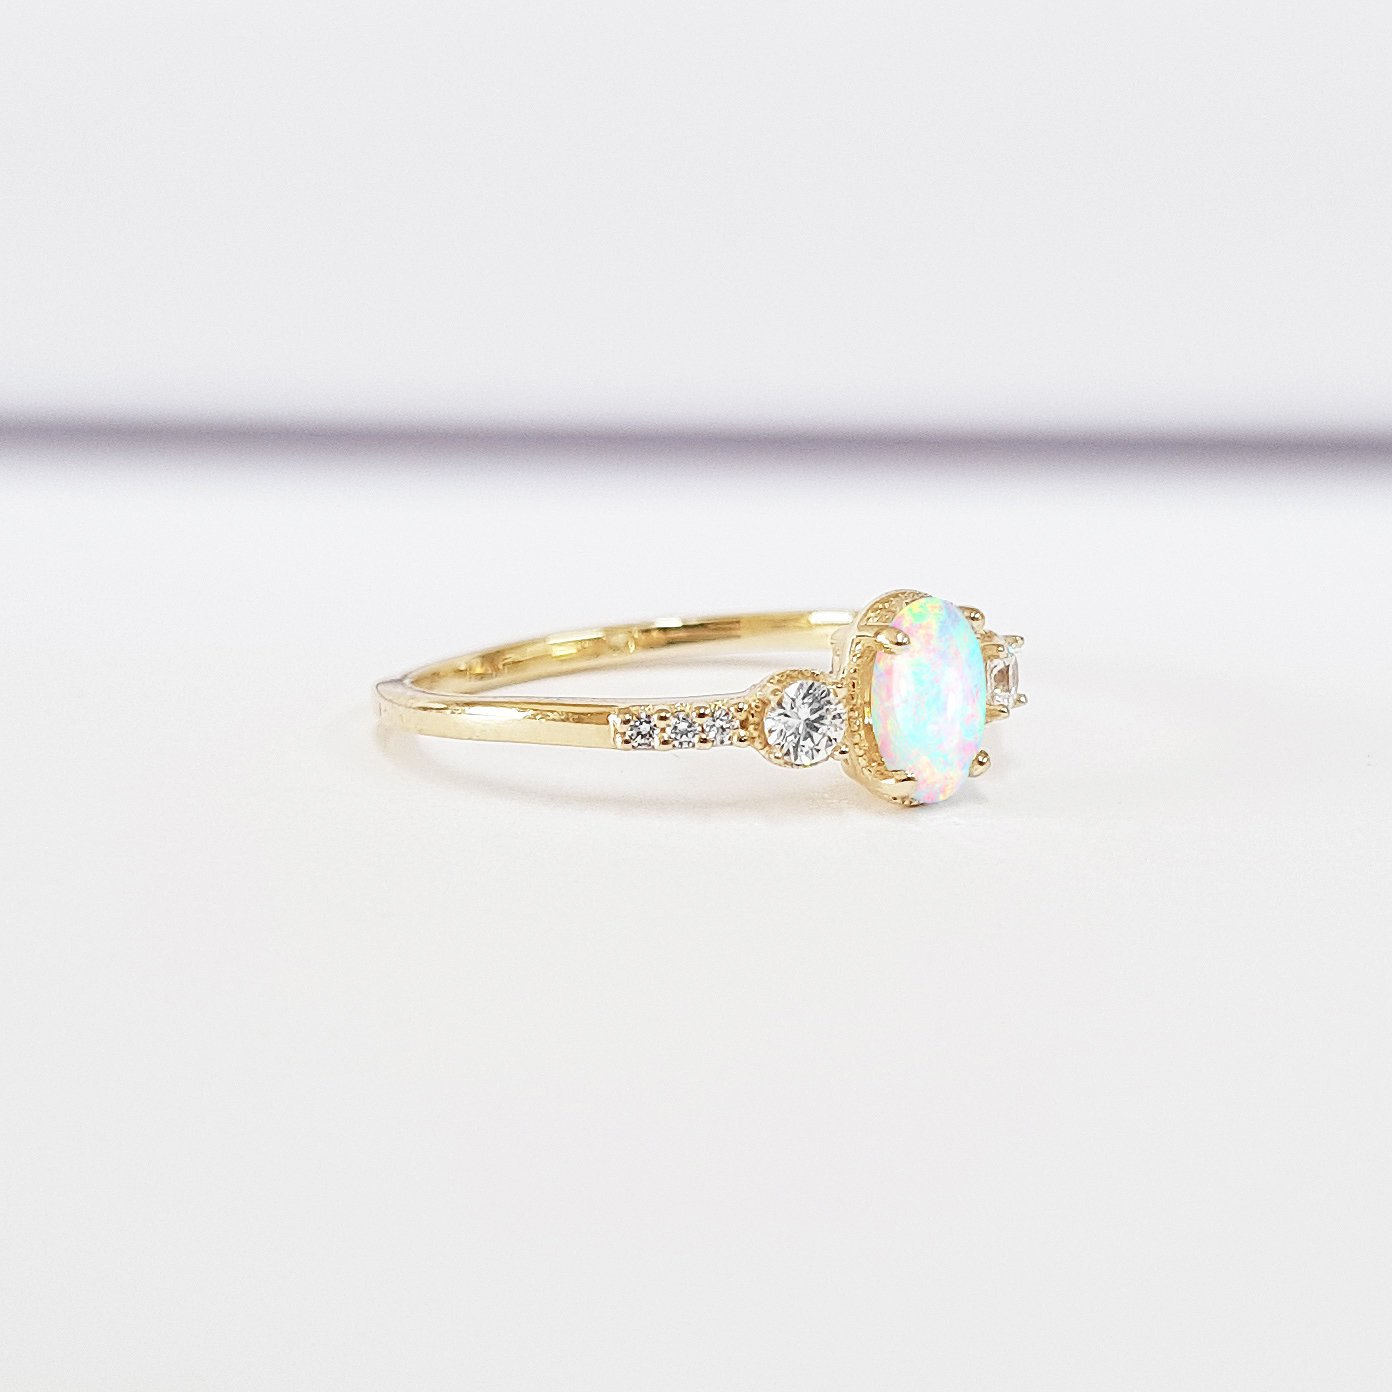 23bf6c2b308d43 Oval opal diamond milgrain trilogy 3 stone engagement ring handmade in  rose/white/yellow gold or platinum petite delicate low profile – Aardvark  Jewellery